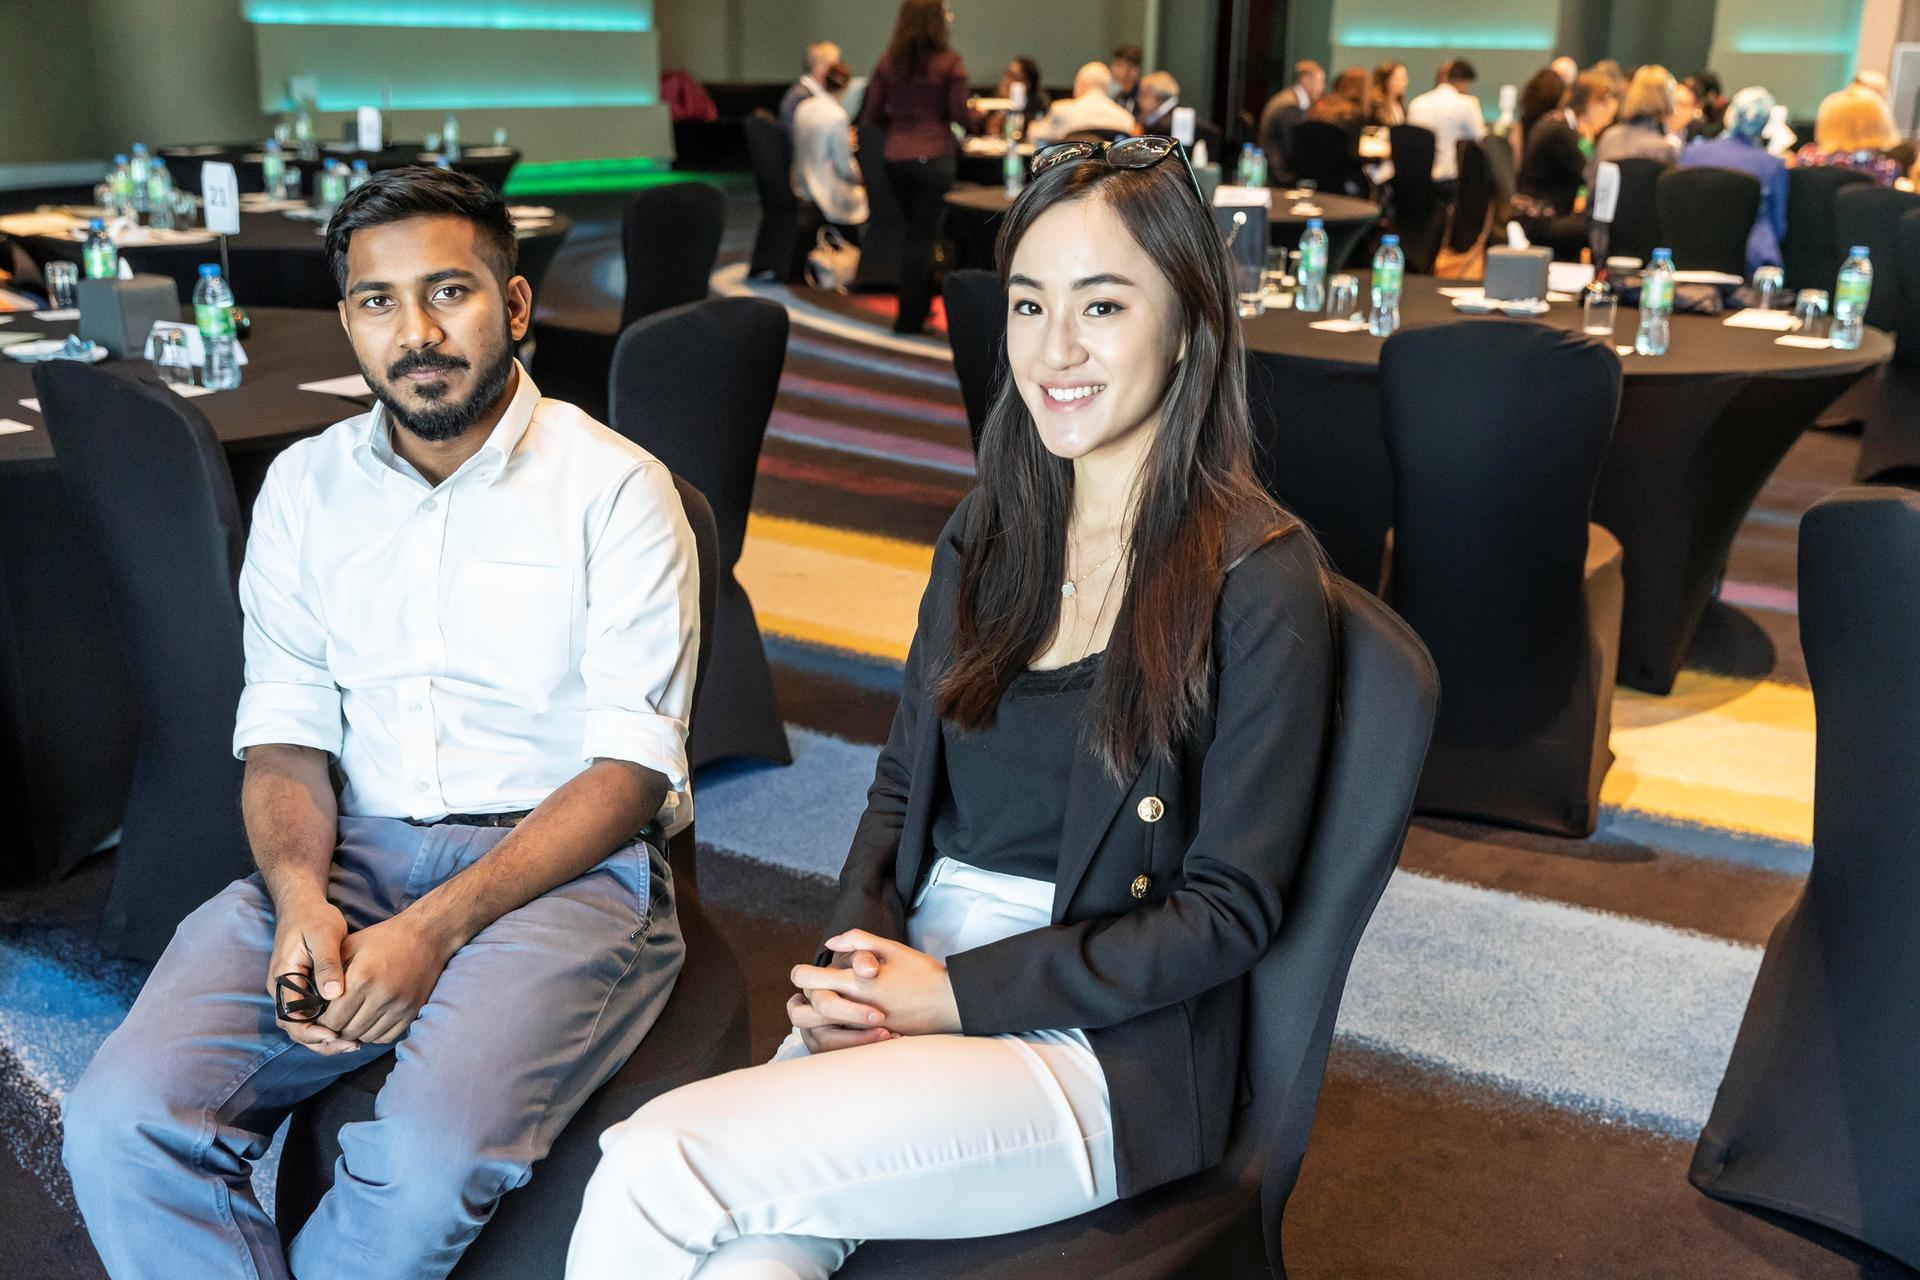 Students in Dubai face university challenge to make new friends